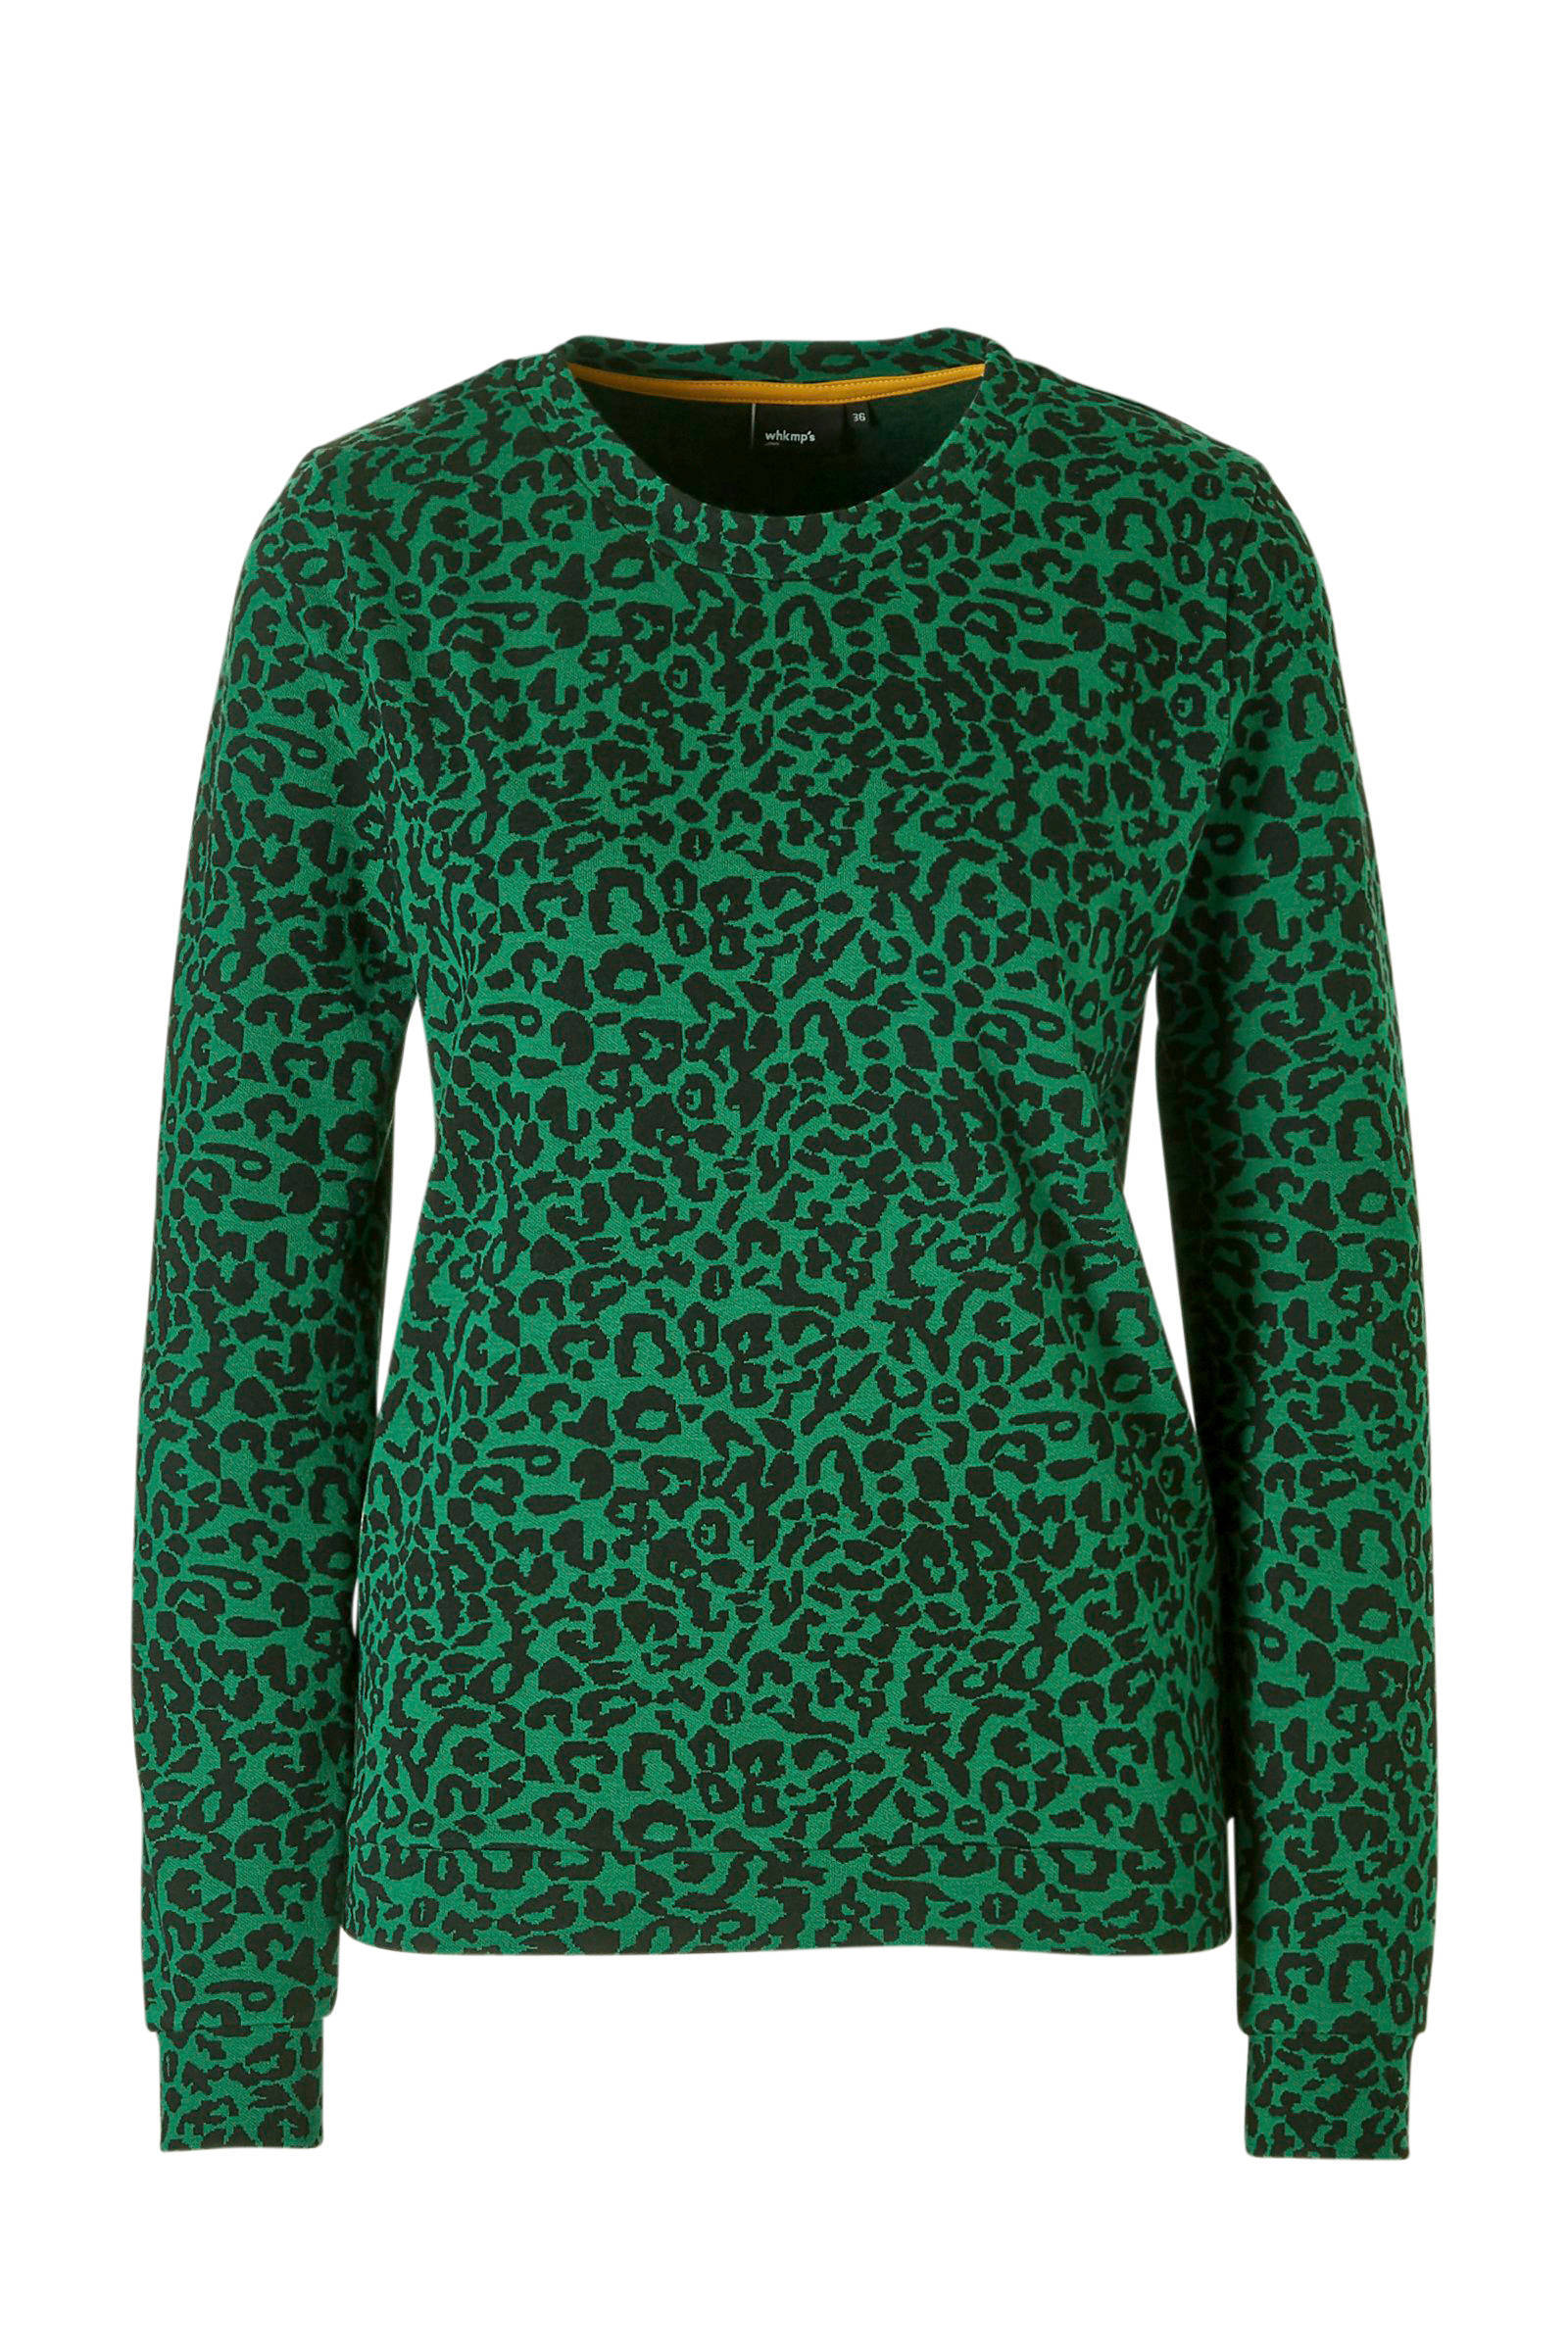 zwarte sweater dames